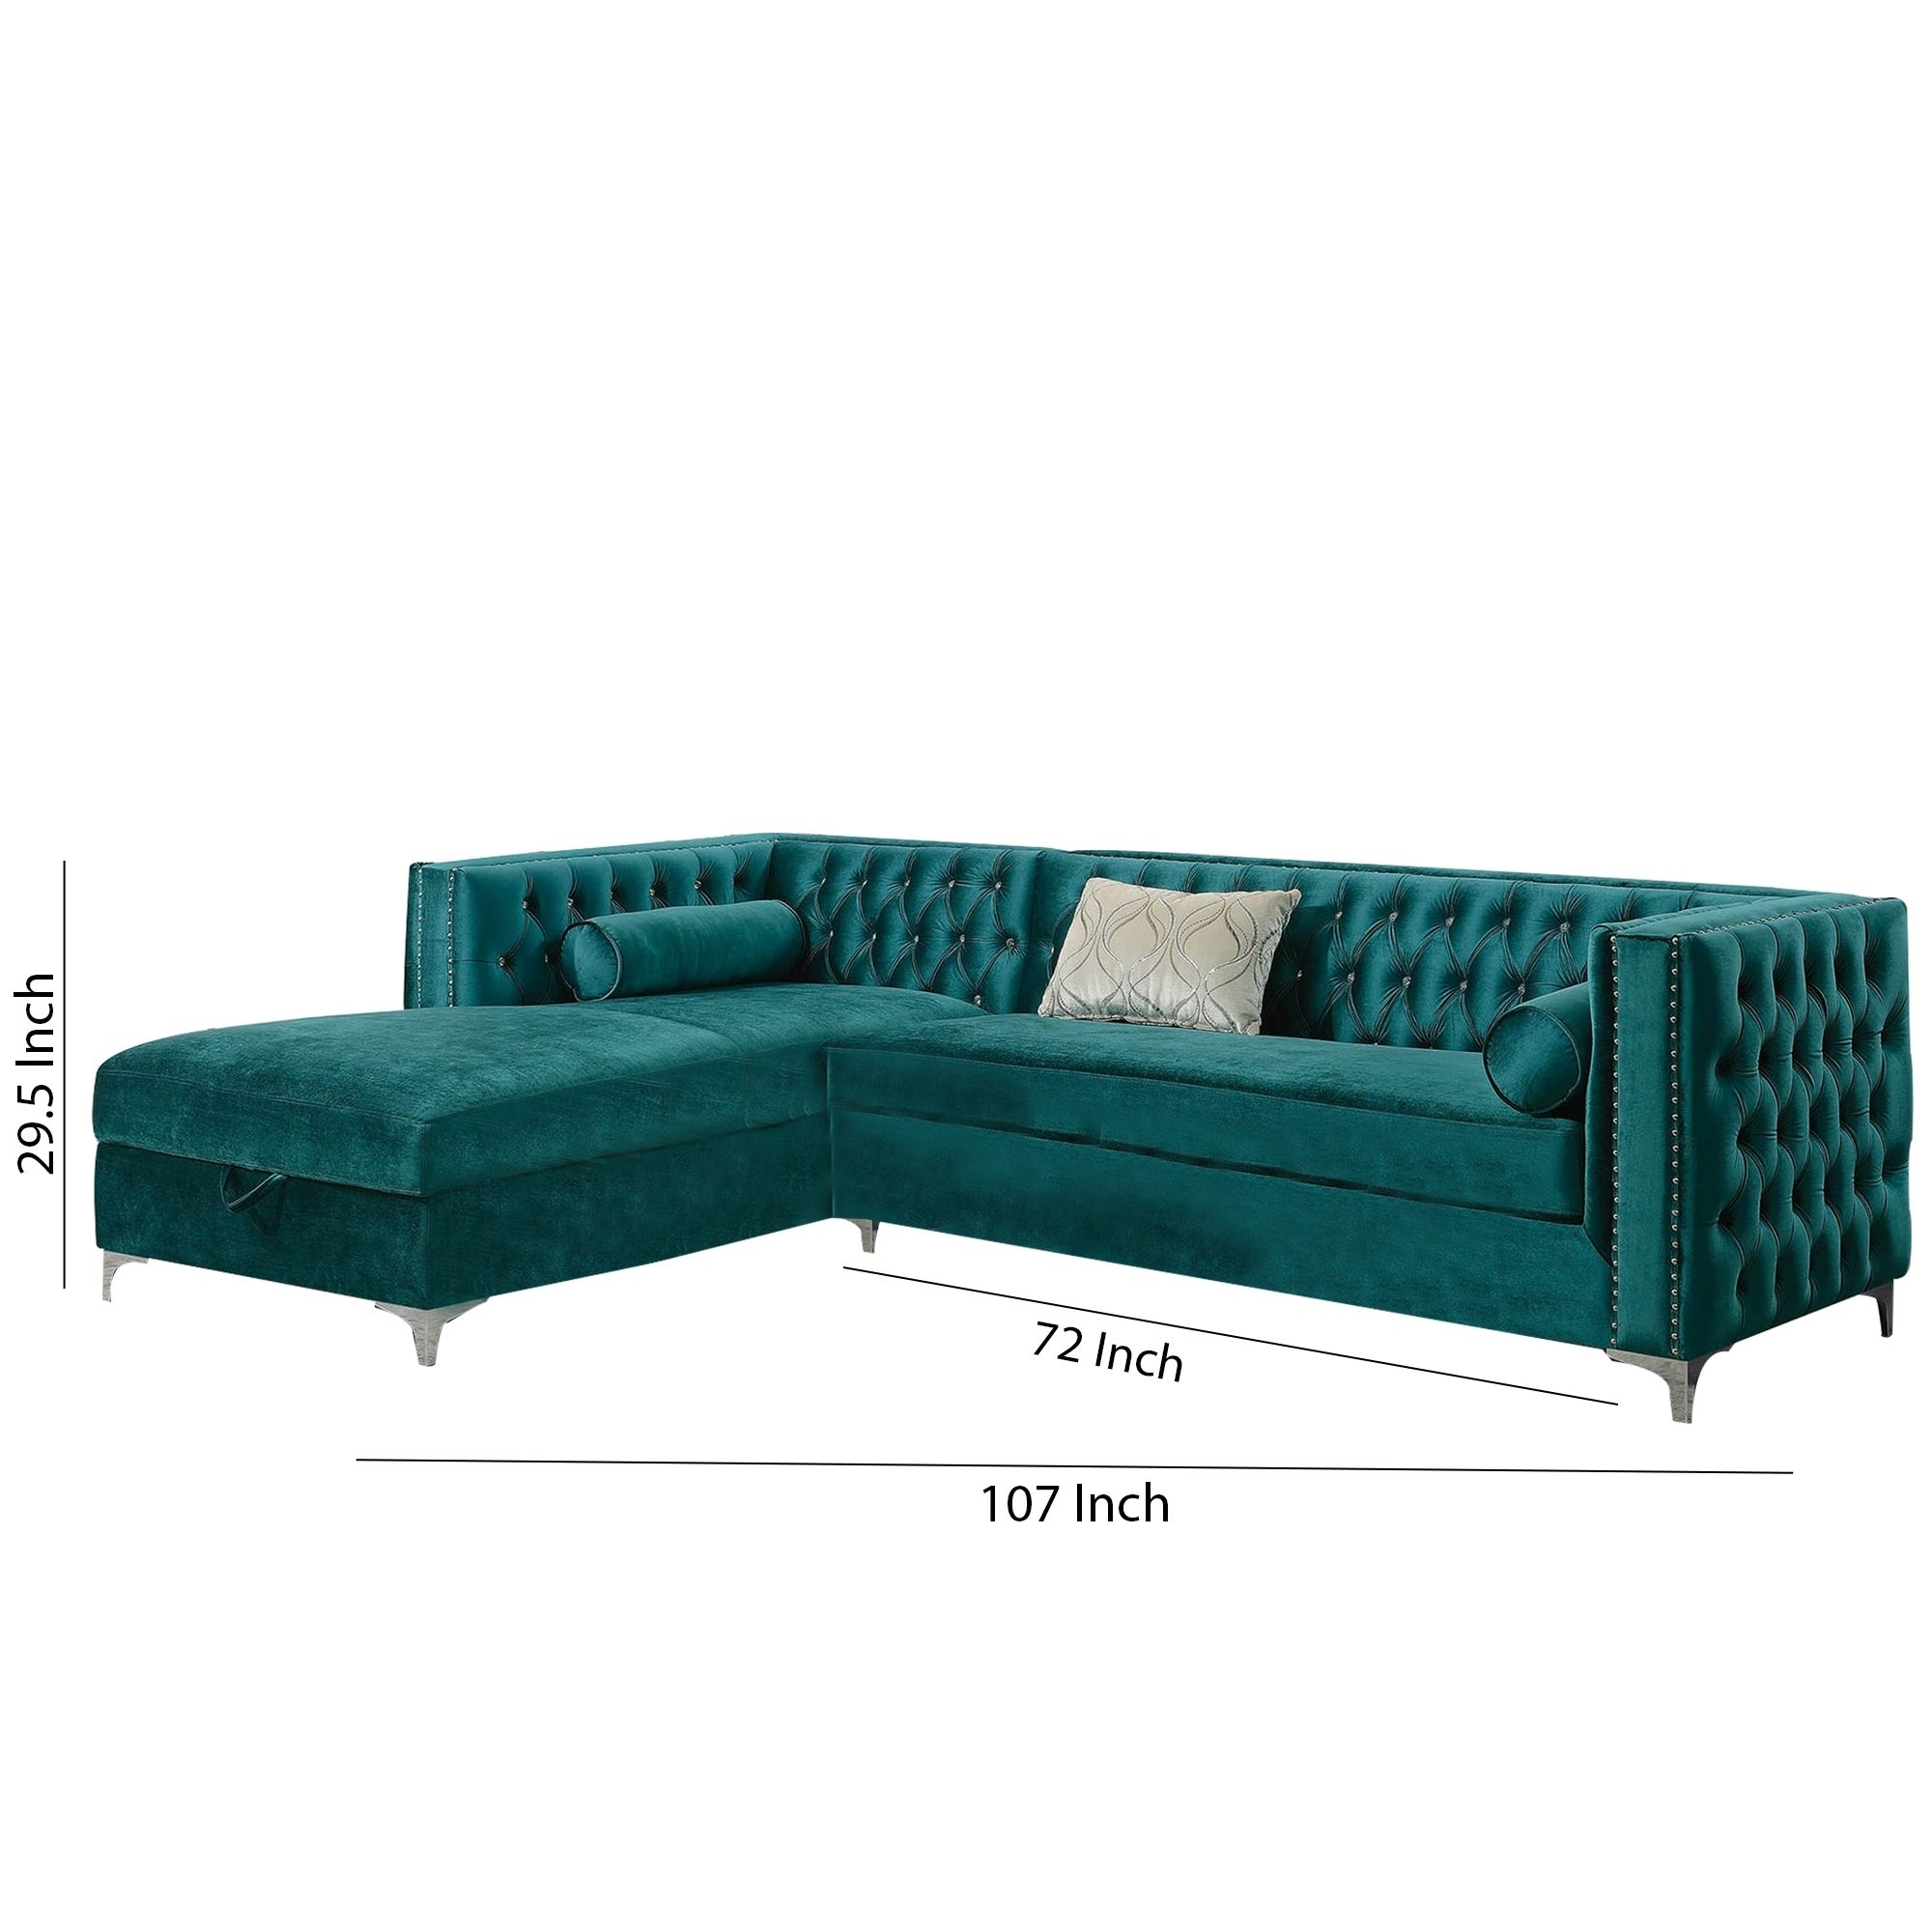 2 Piece Sectional Sofa With Tufted